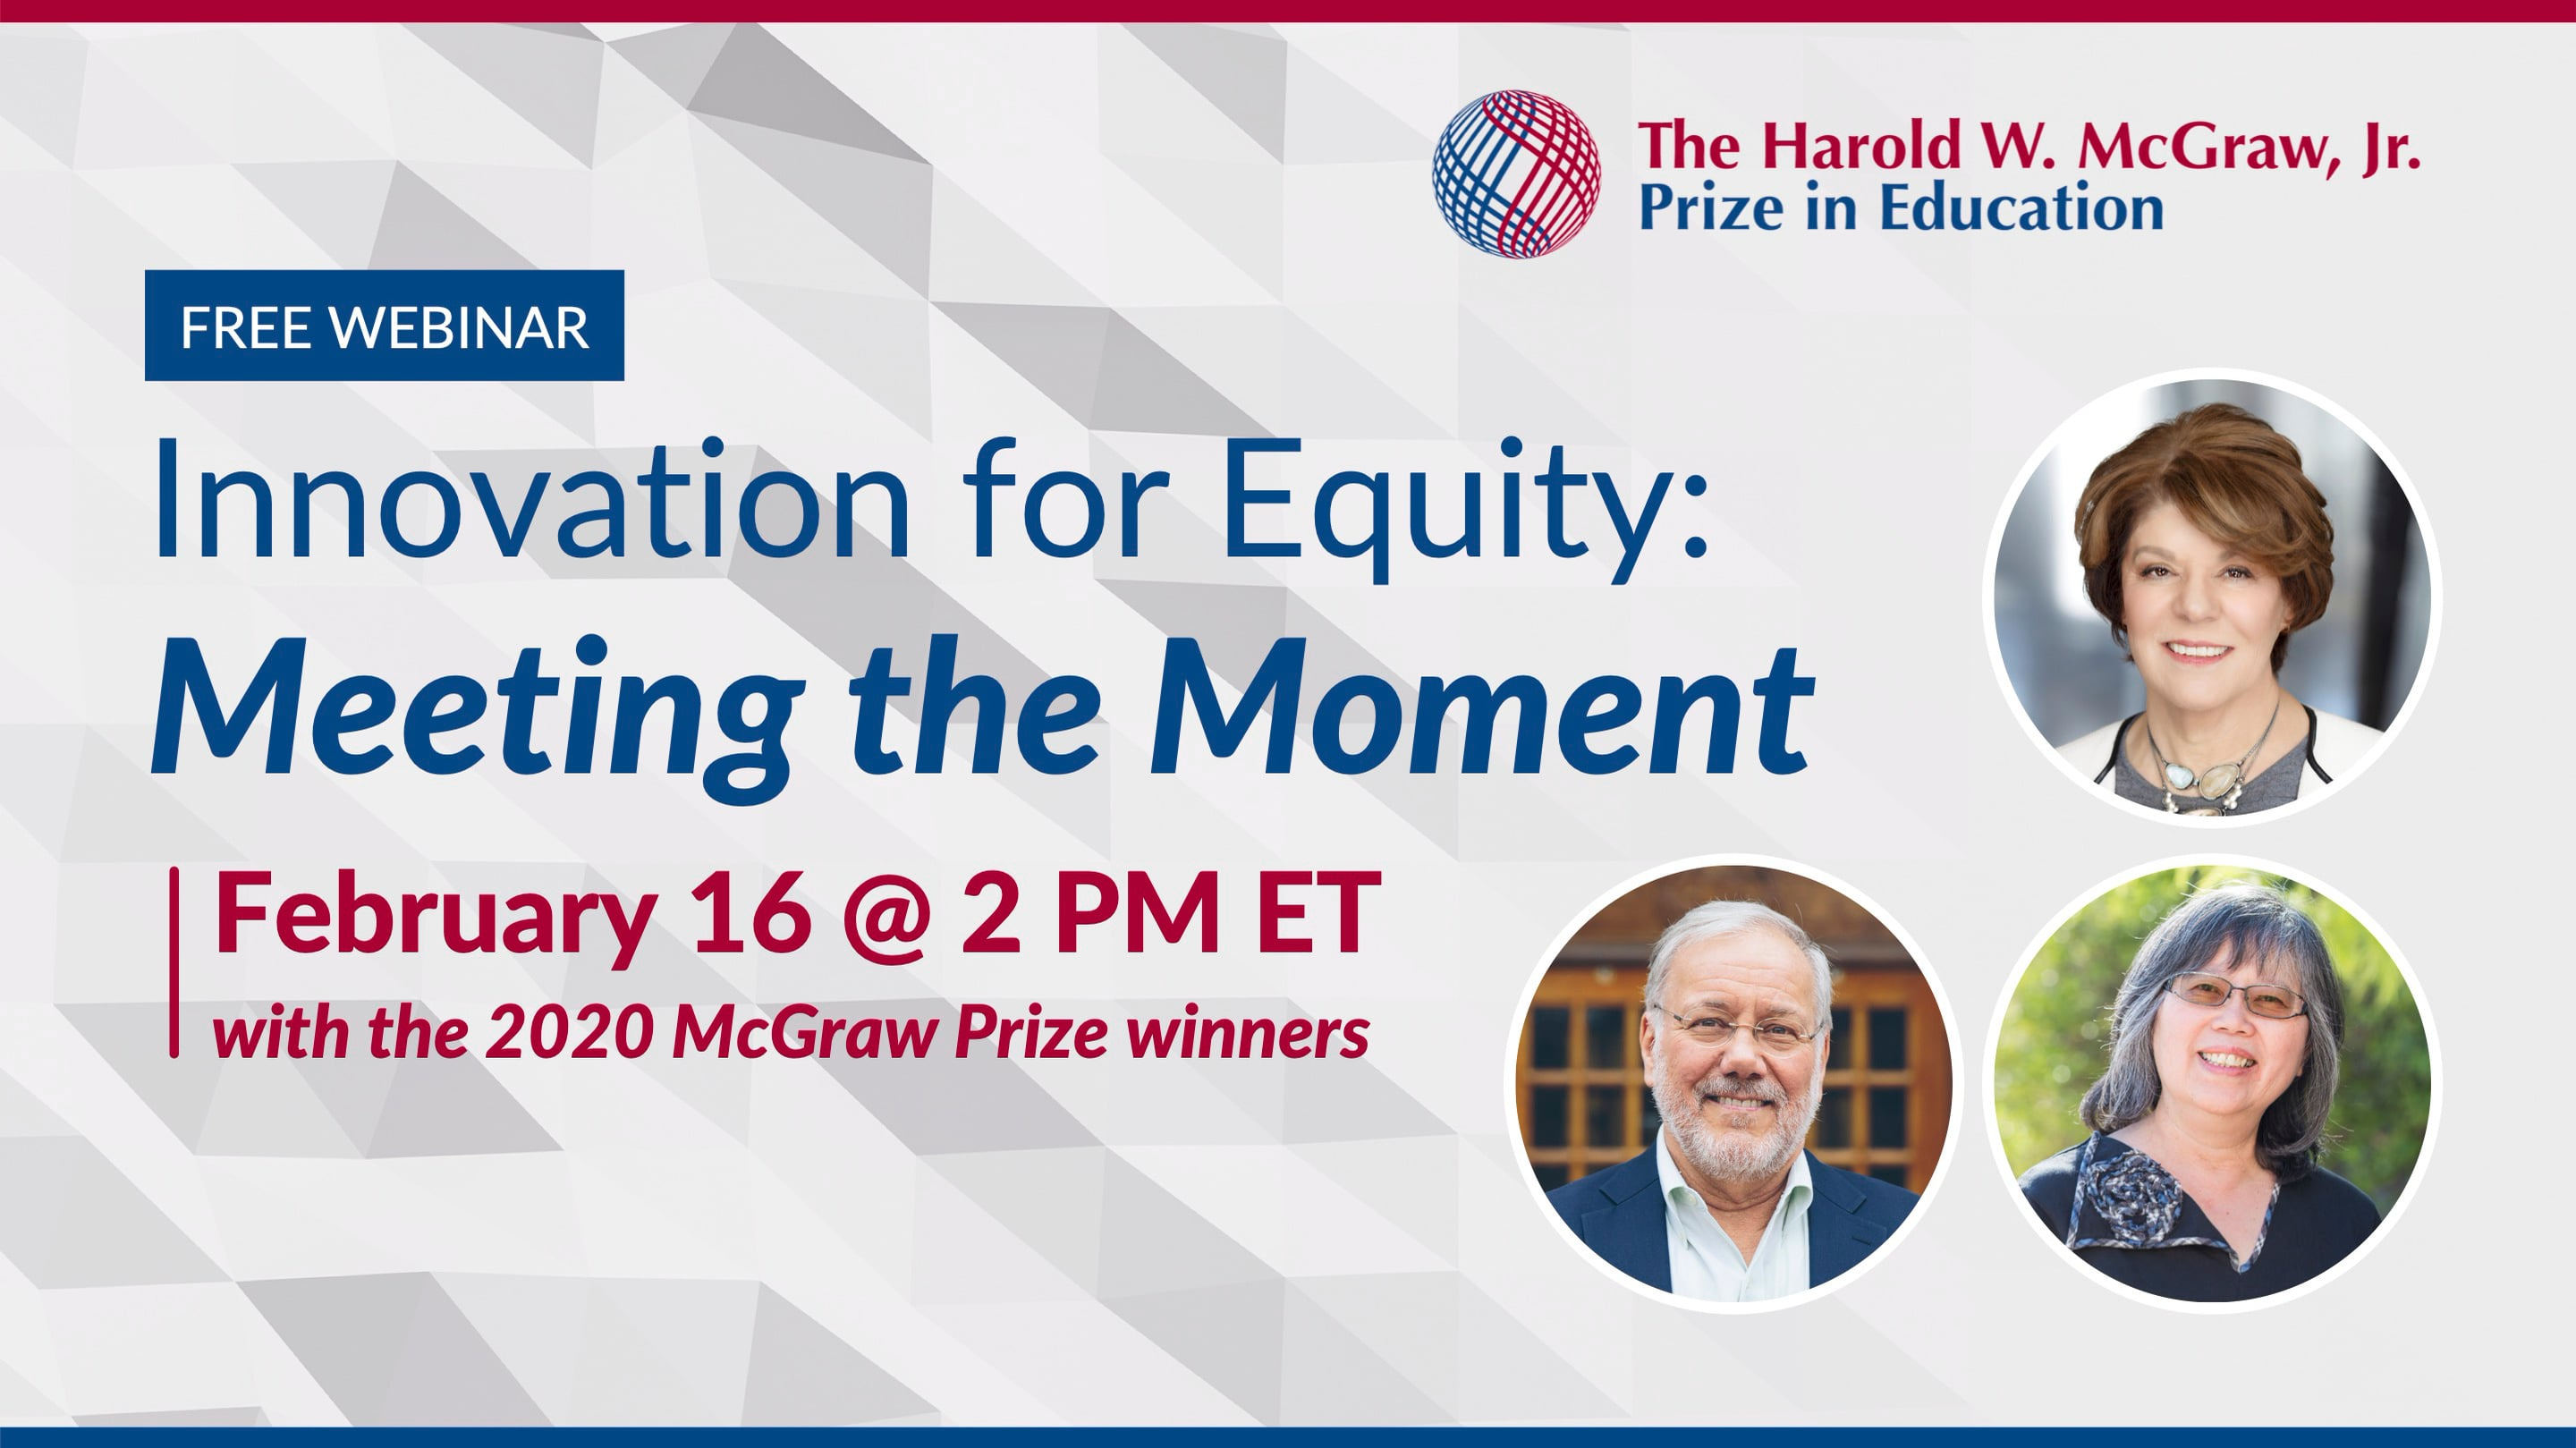 Play video: Innovation for Equity: Meeting the Moment